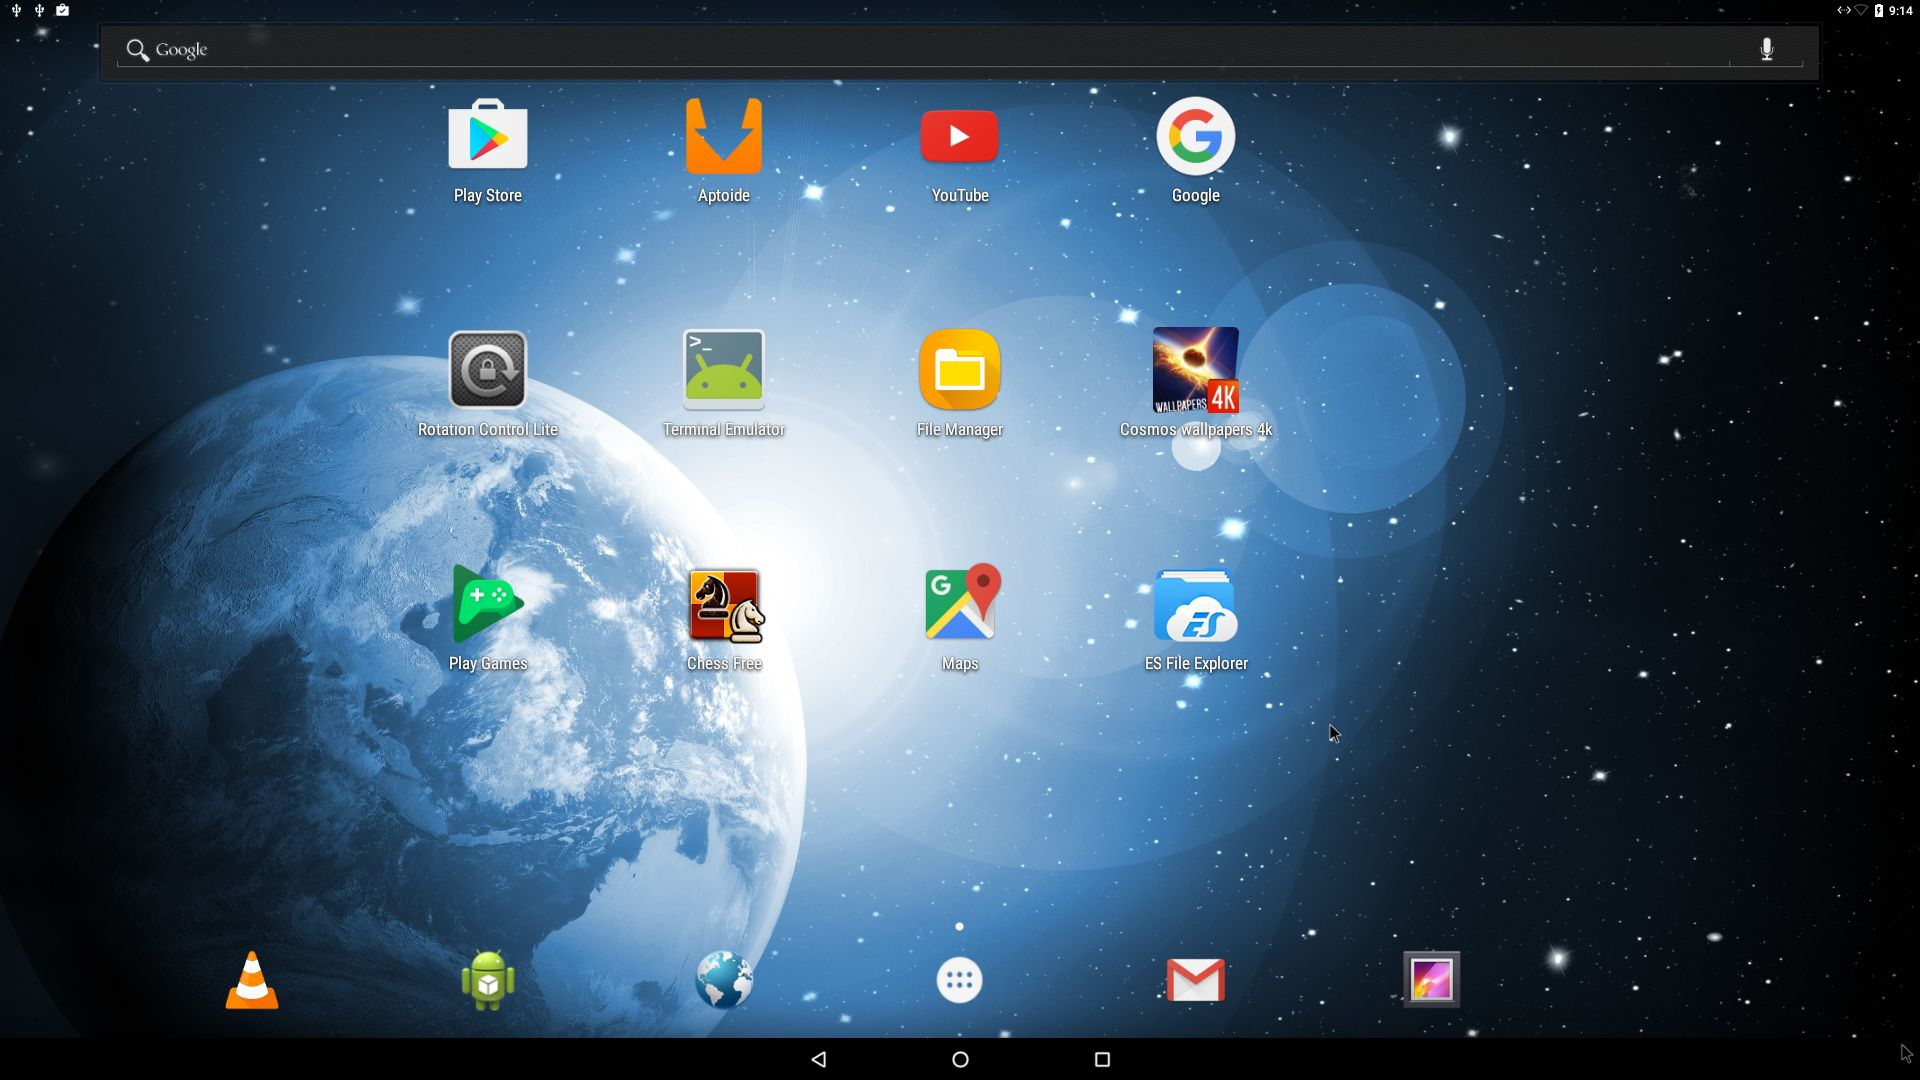 AndEX Project Brings Android 7.0 Nougat With GAPPS & Linux